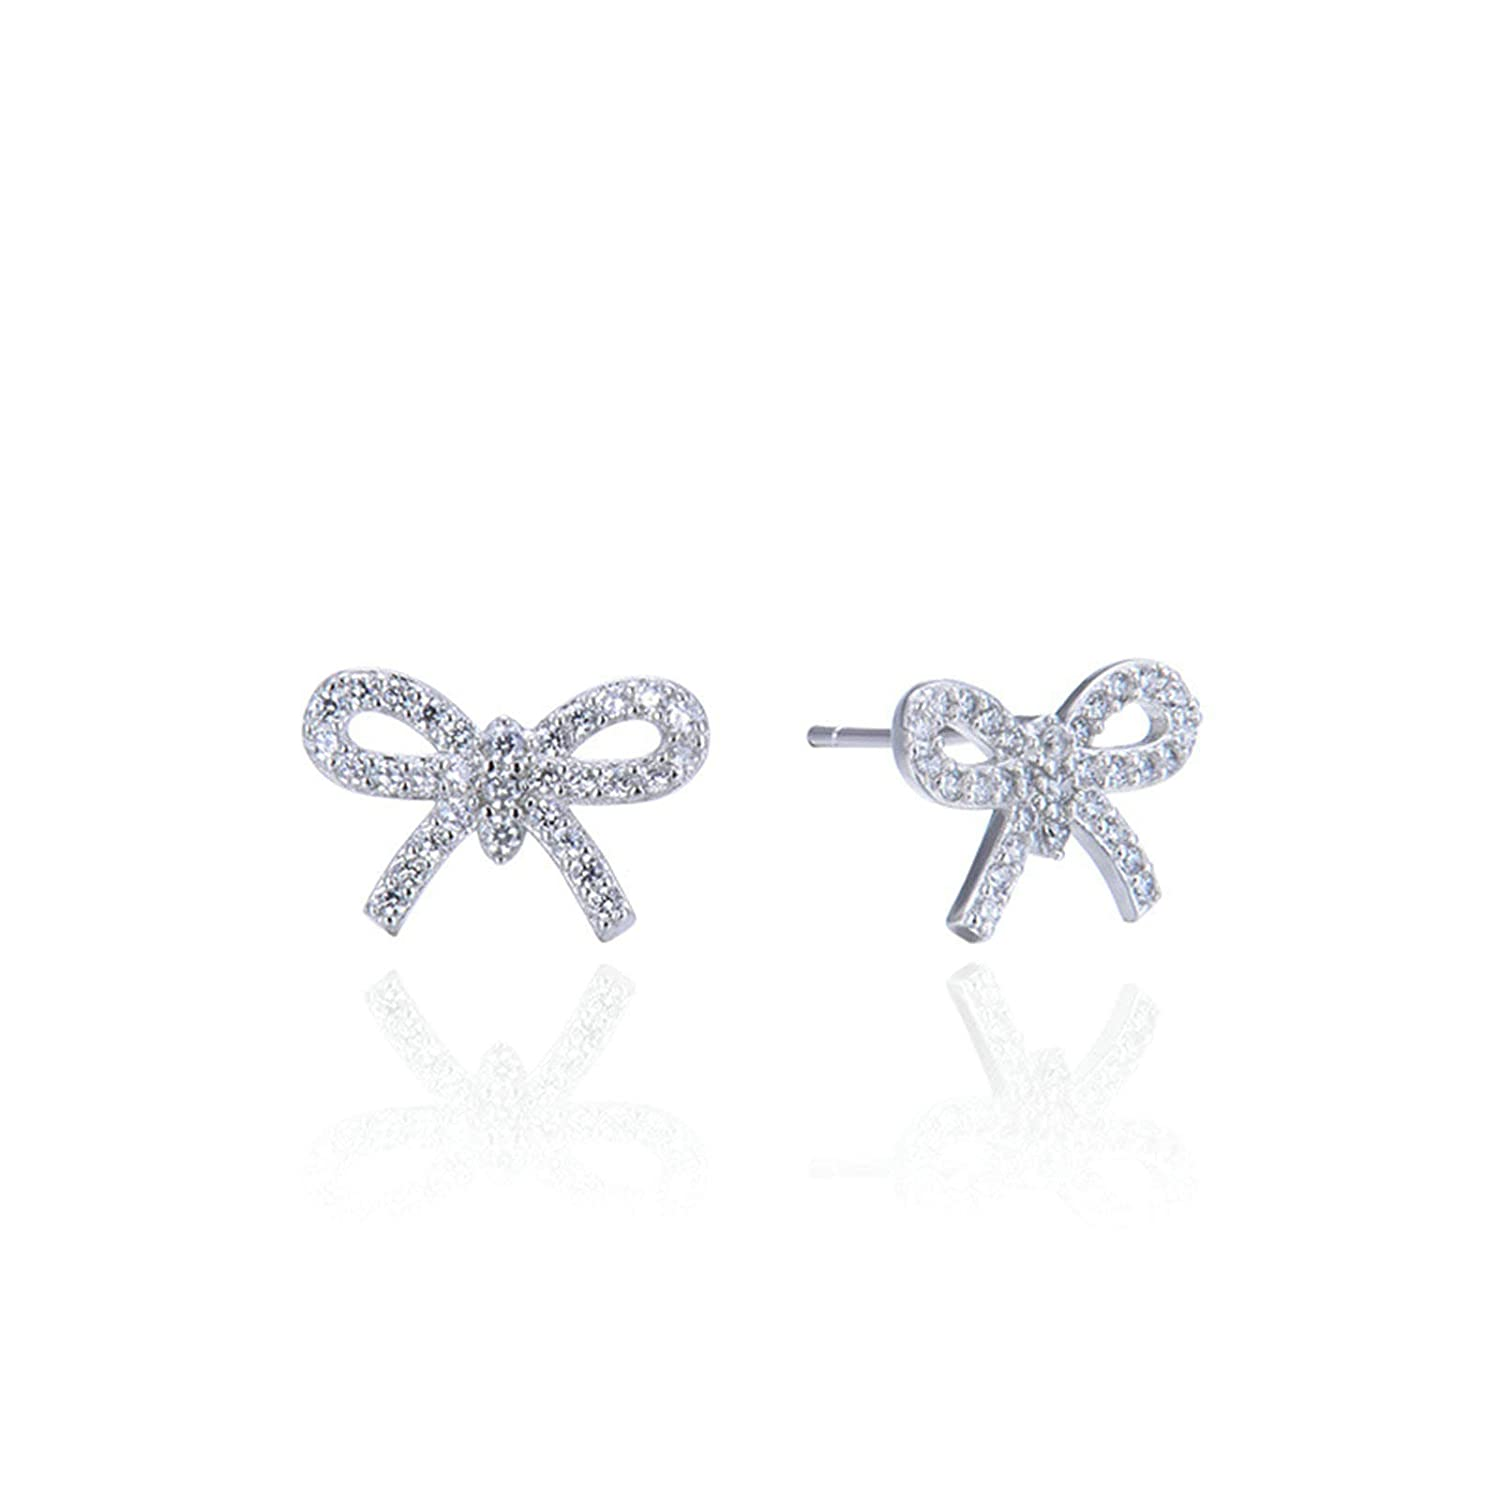 Sterling Silver Plated Cubic Zirconia Bowknot Bowtie Charm Stud Earrings